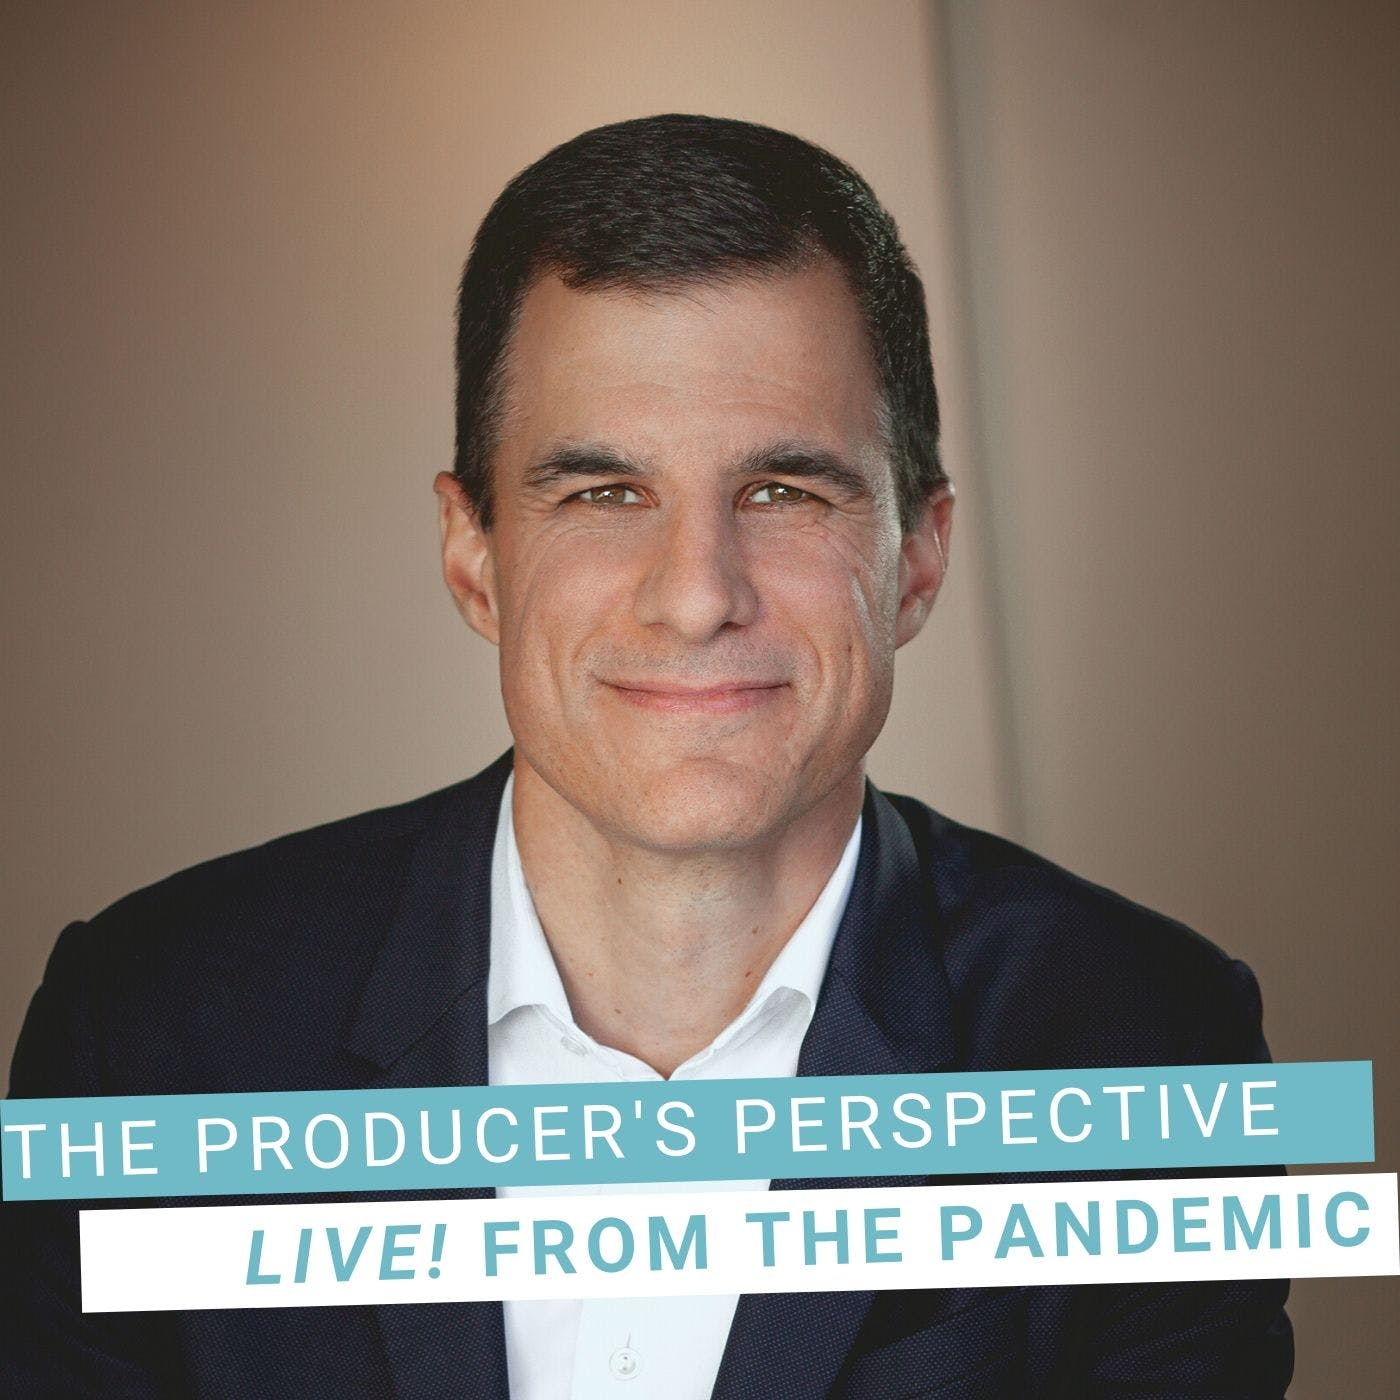 Live From The Pandemic #1: KEN DAVENPORT